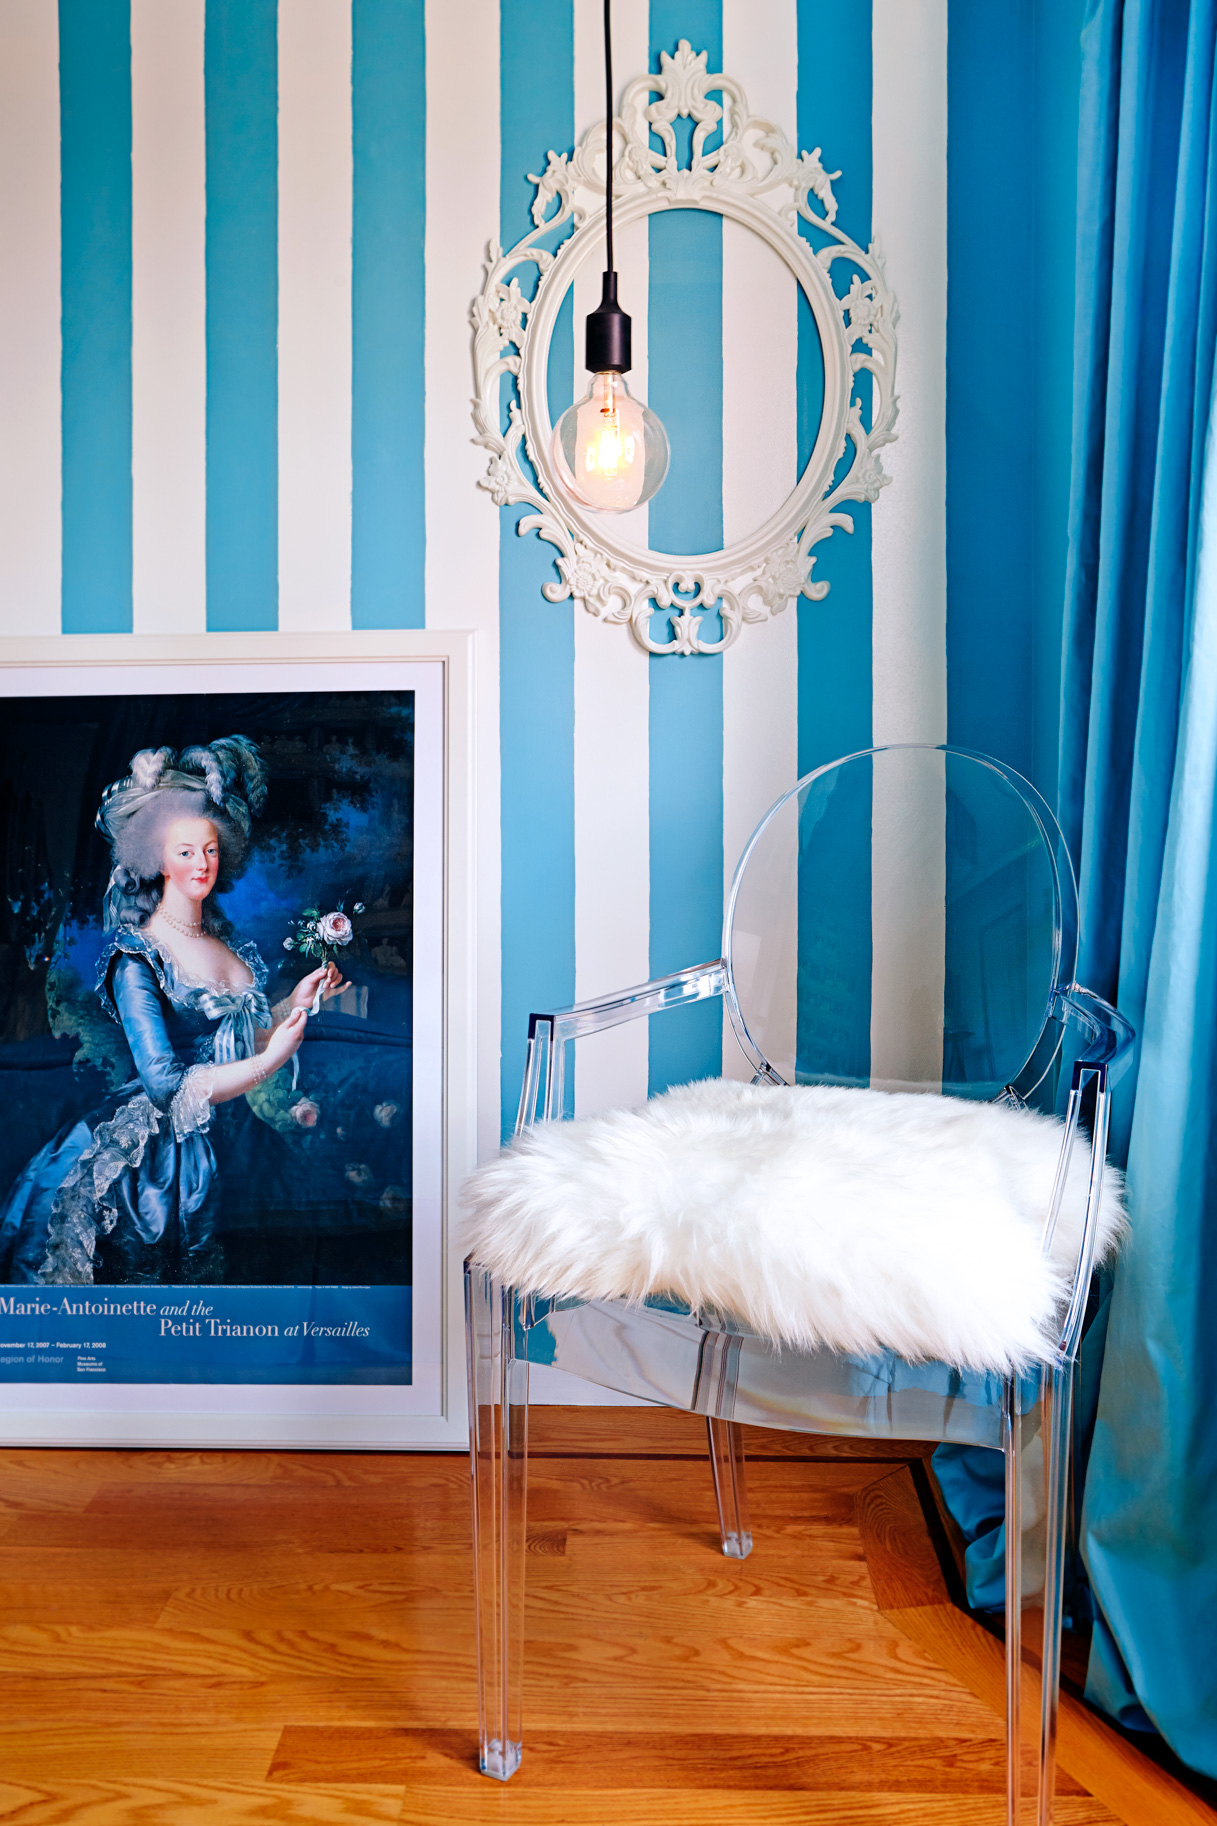 A Phillippe Starck Louis Ghost sits comfortably with classic stripes, an empty Rococo frame, a Muuto hanging lamp, and Marie Antoinette leans in.